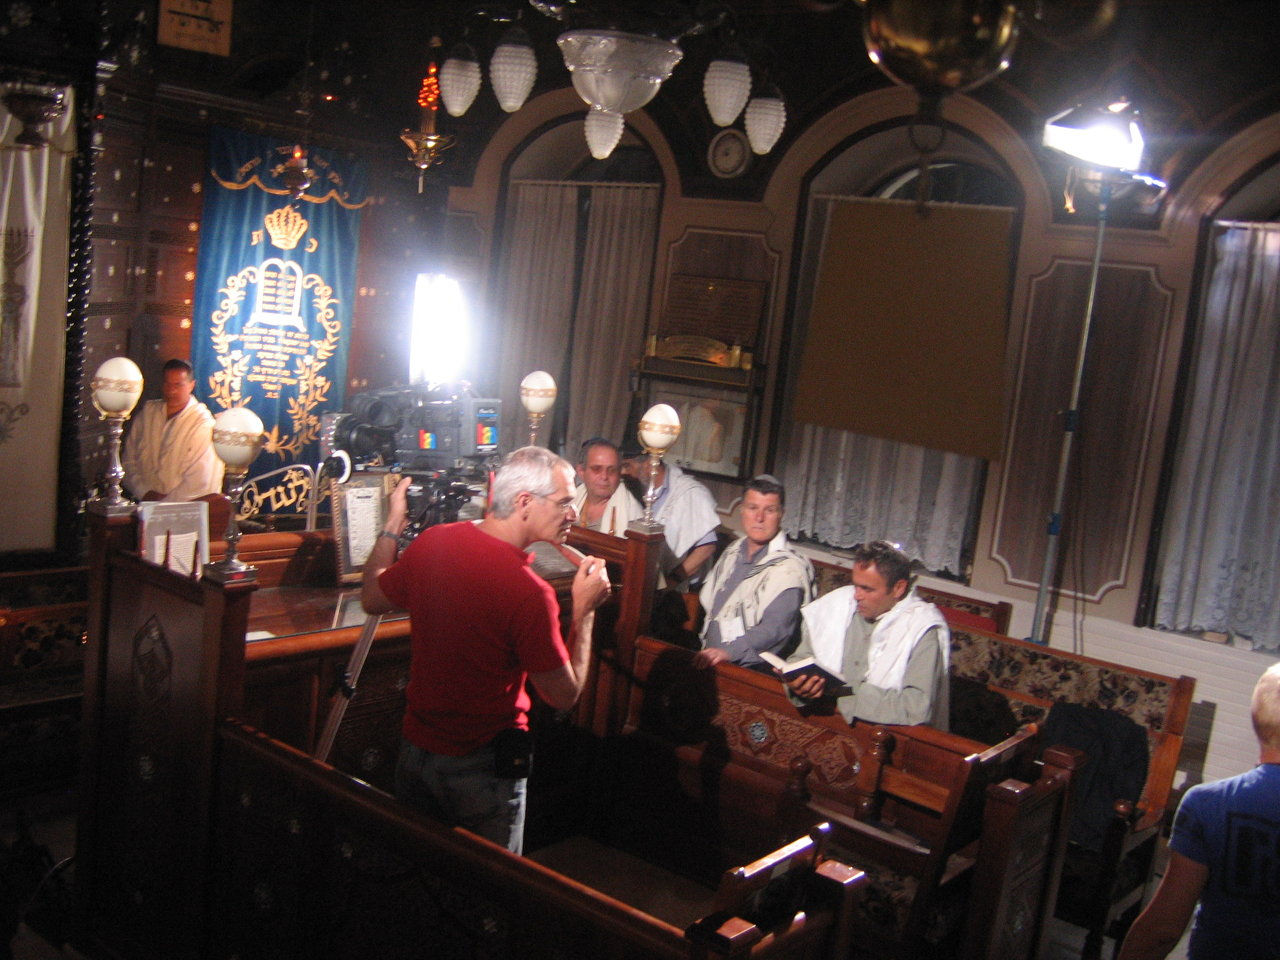 An historic synagogue scene